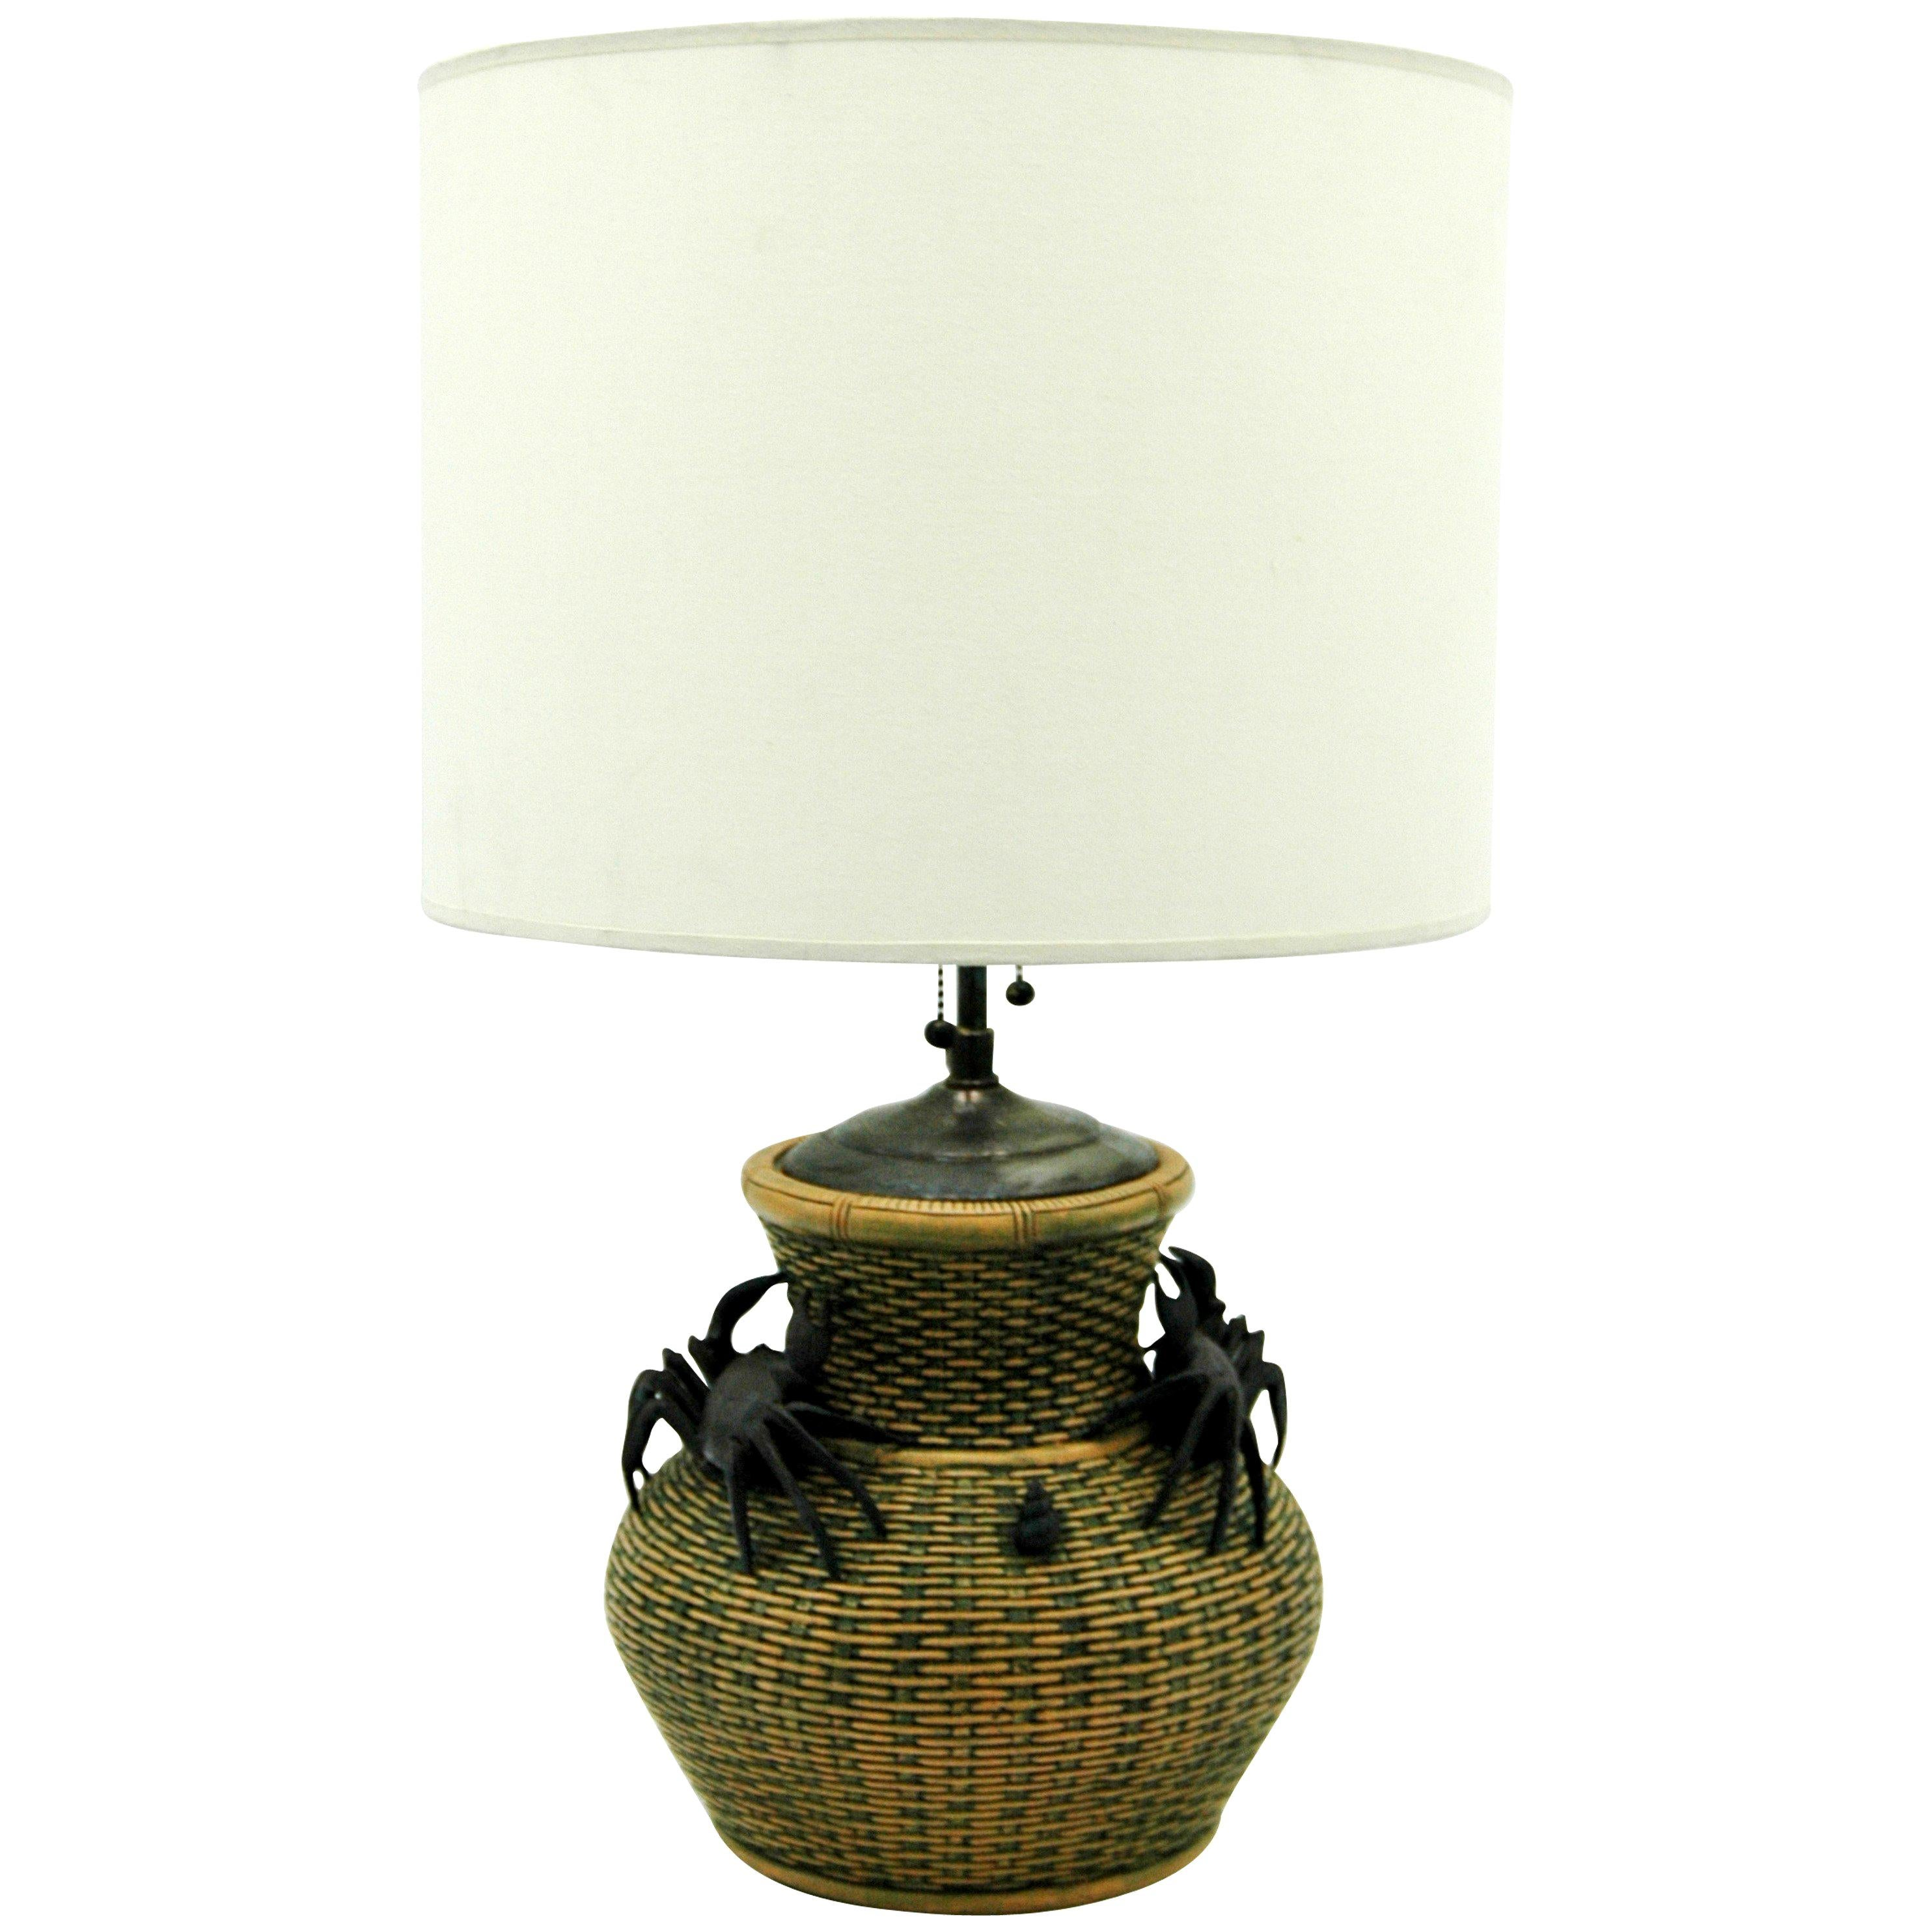 Chinese Clay Vase Table Lamp